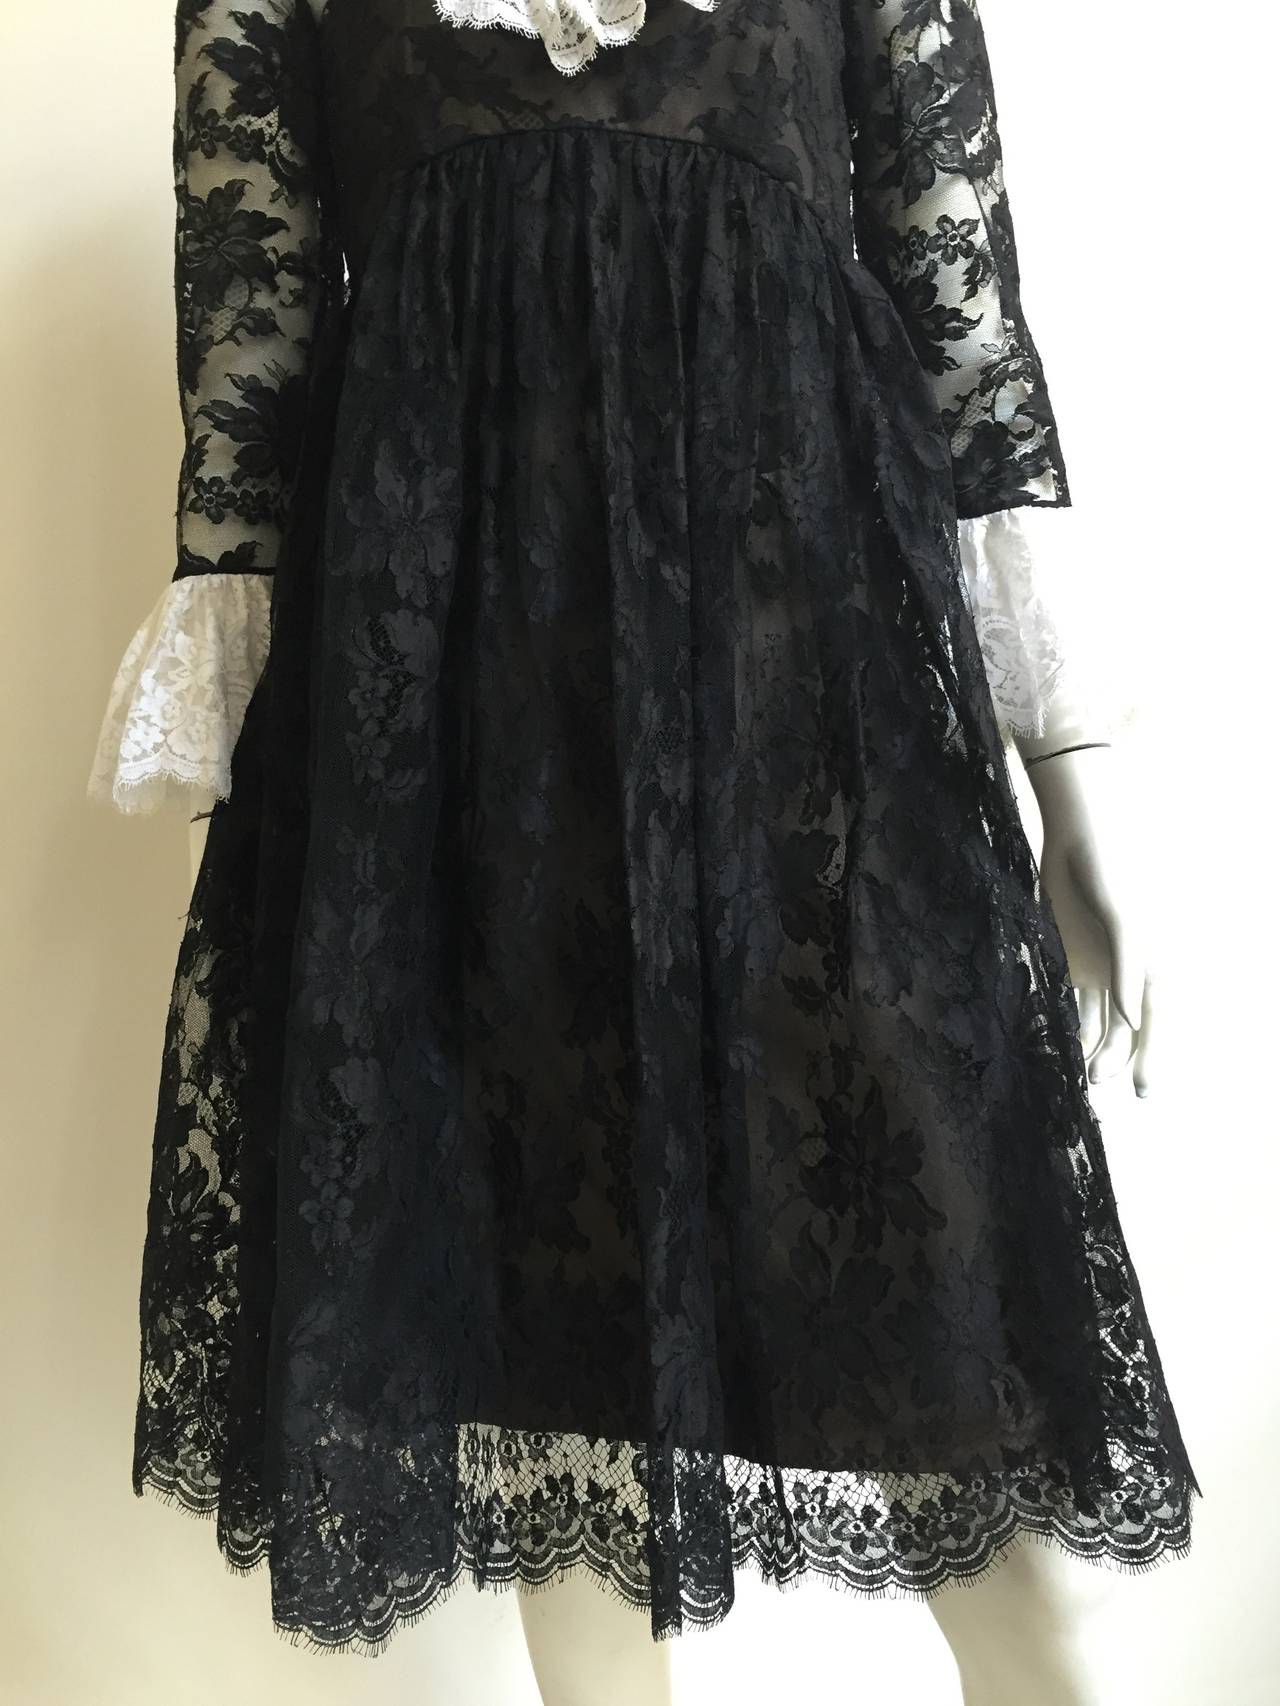 Bill Blass 60s Lace Cocktail Evening Dress Size 6. 3